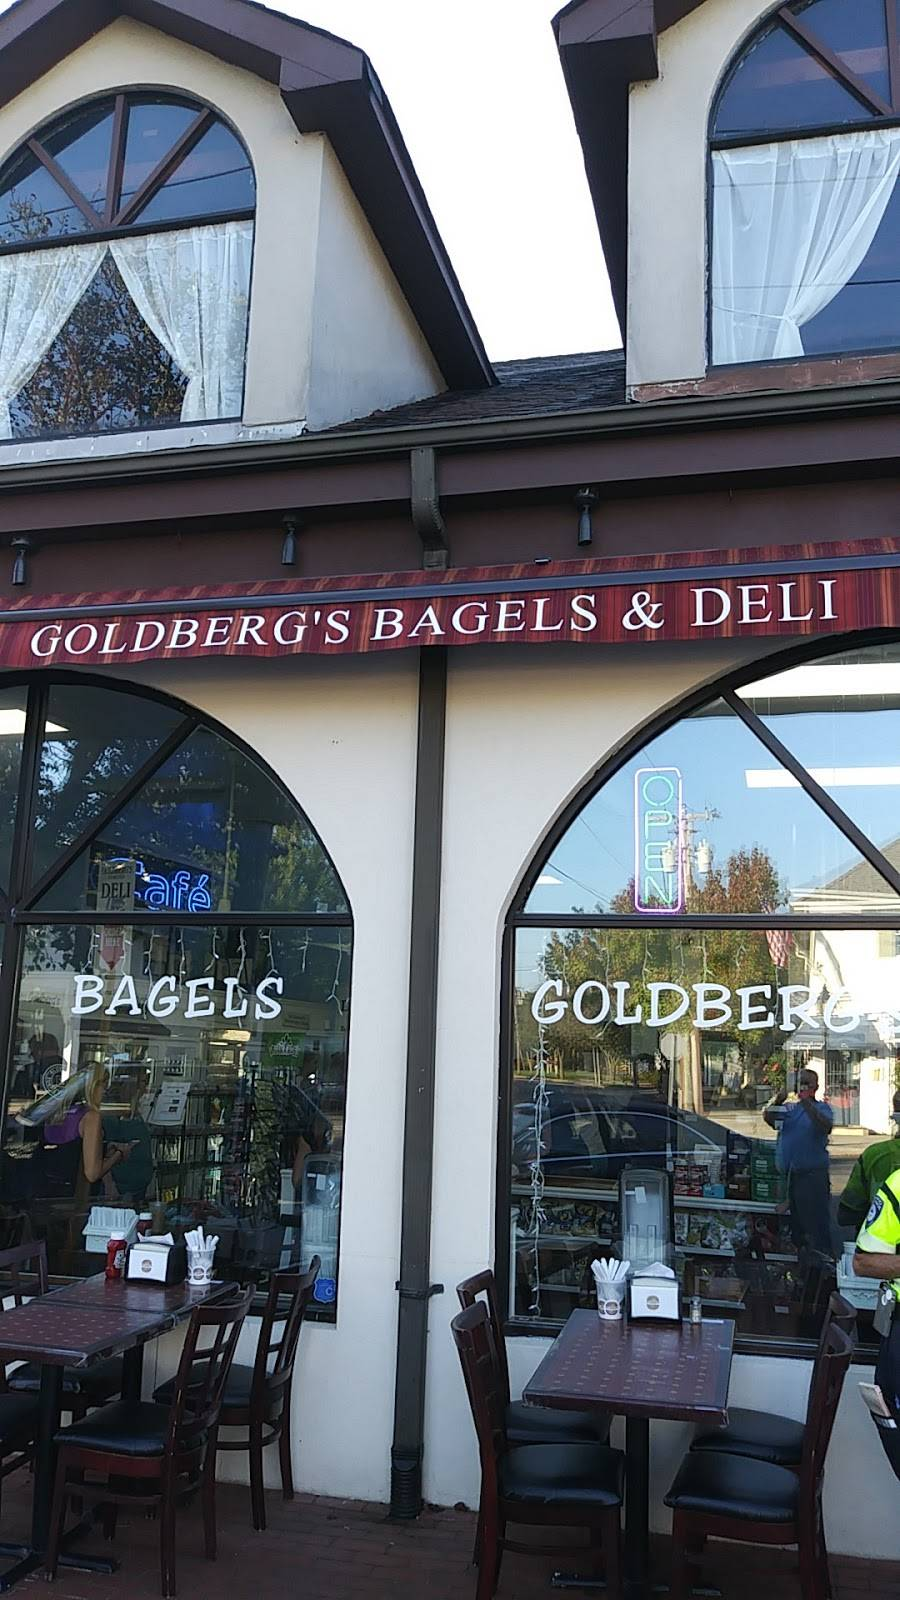 Goldbergs Famous Deli & Restaurant | bakery | 65 Main St, Westhampton Beach, NY 11978, USA | 6319983878 OR +1 631-998-3878